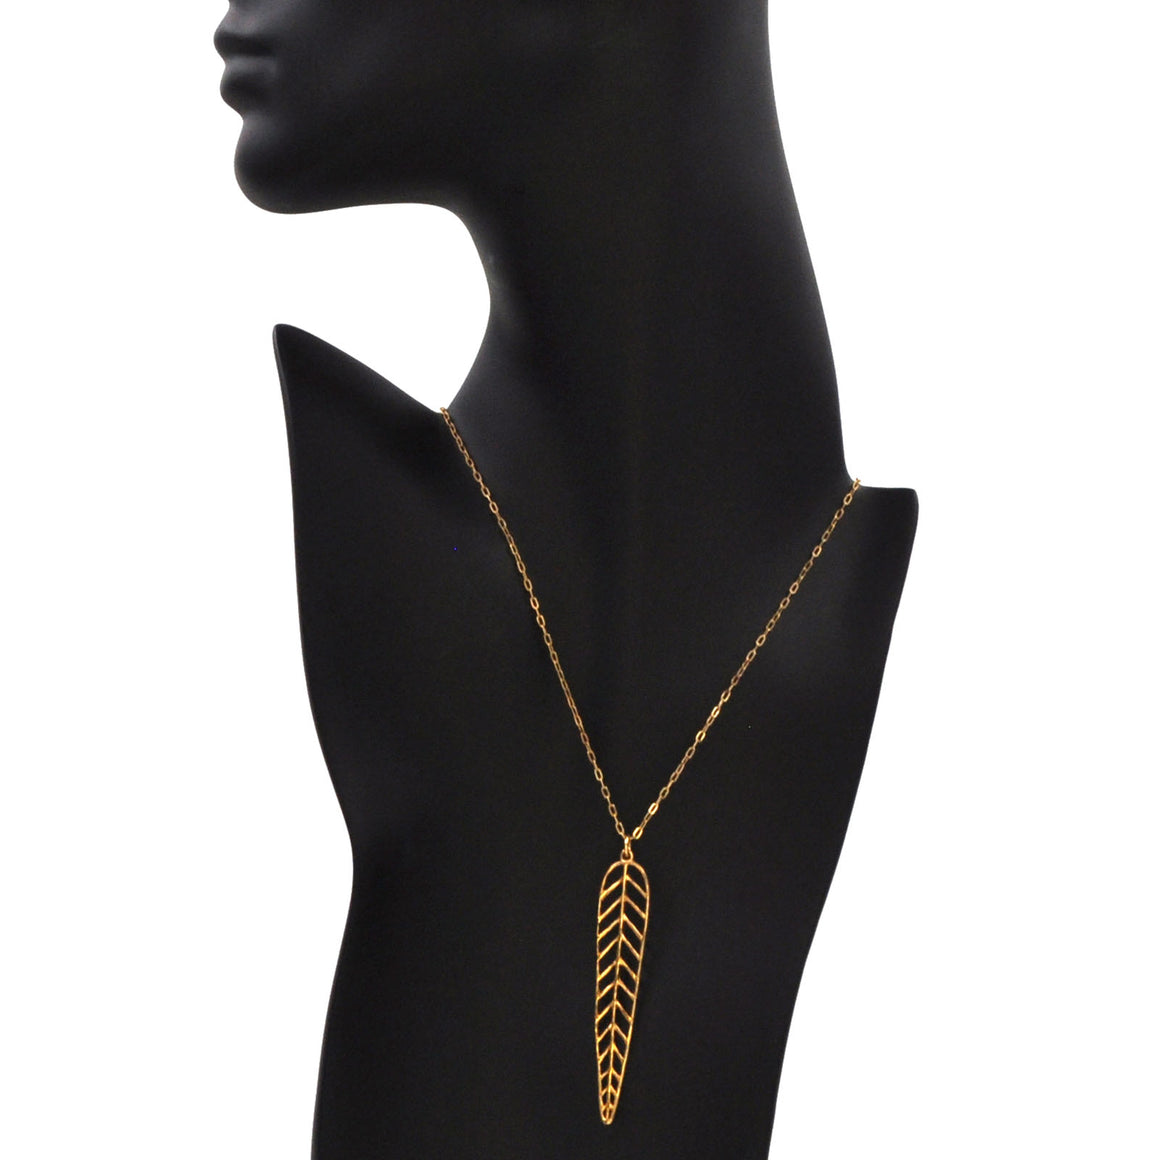 Chevron Leaf Necklace - 24K Gold Plated